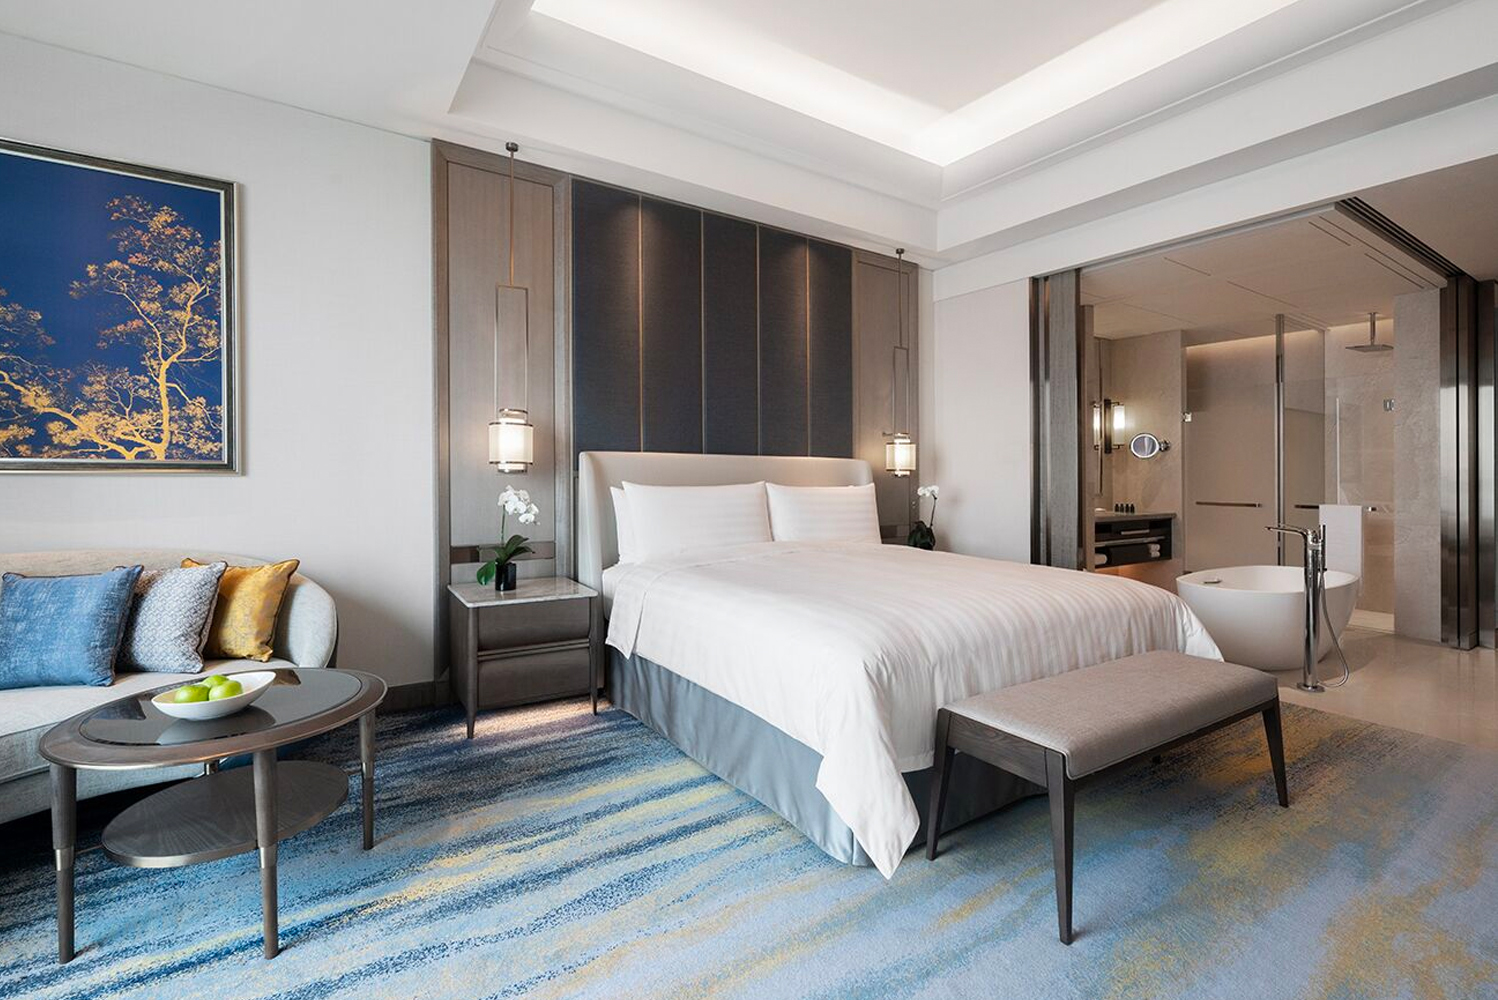 The 32-story Shangri-La Hotel, Suzhou Yuanqu has 303 guestrooms and suites, as well as 16 serviced residences with views of Jinji Lake and the city landscape.